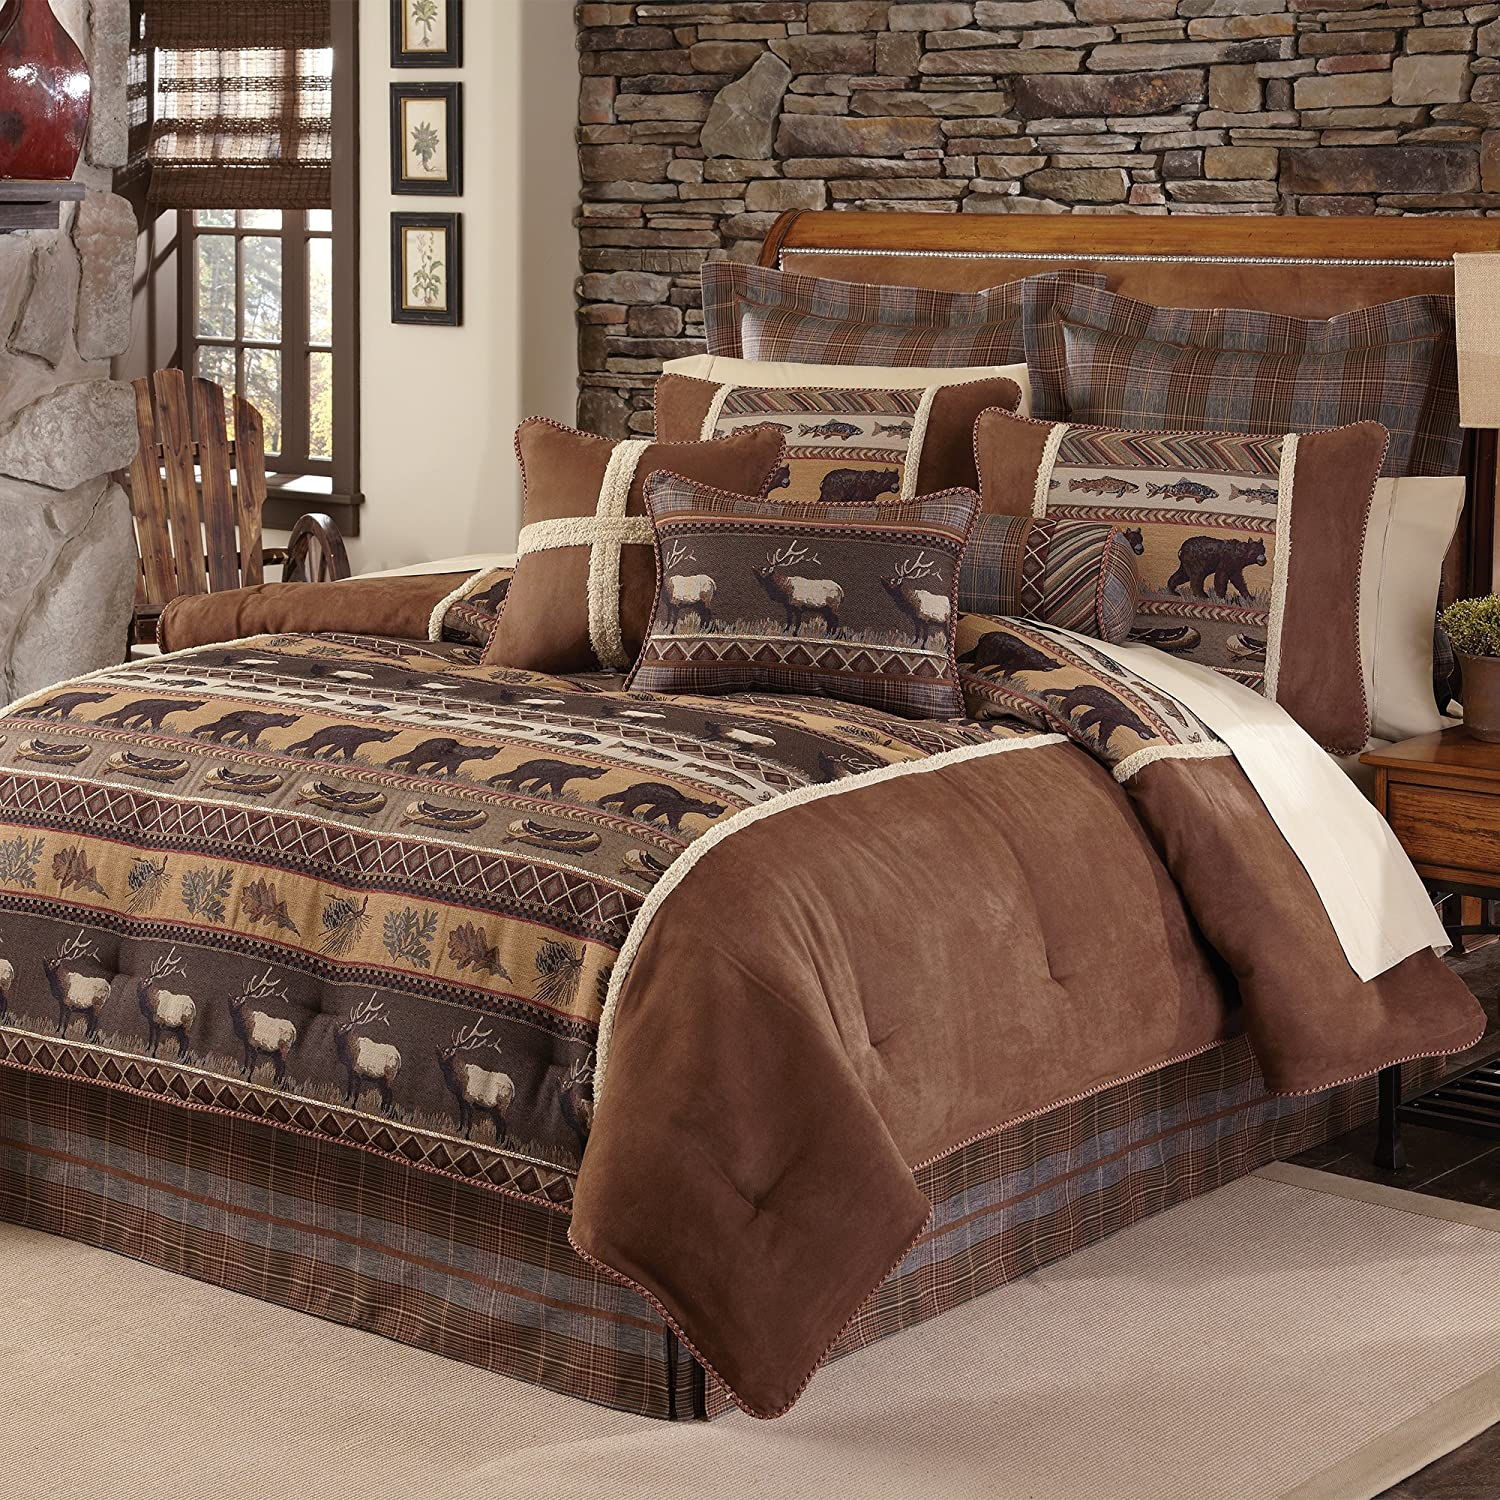 4 Piece Brown Cabin Themed Comforter Queen Set, Lodge Bedding Bears